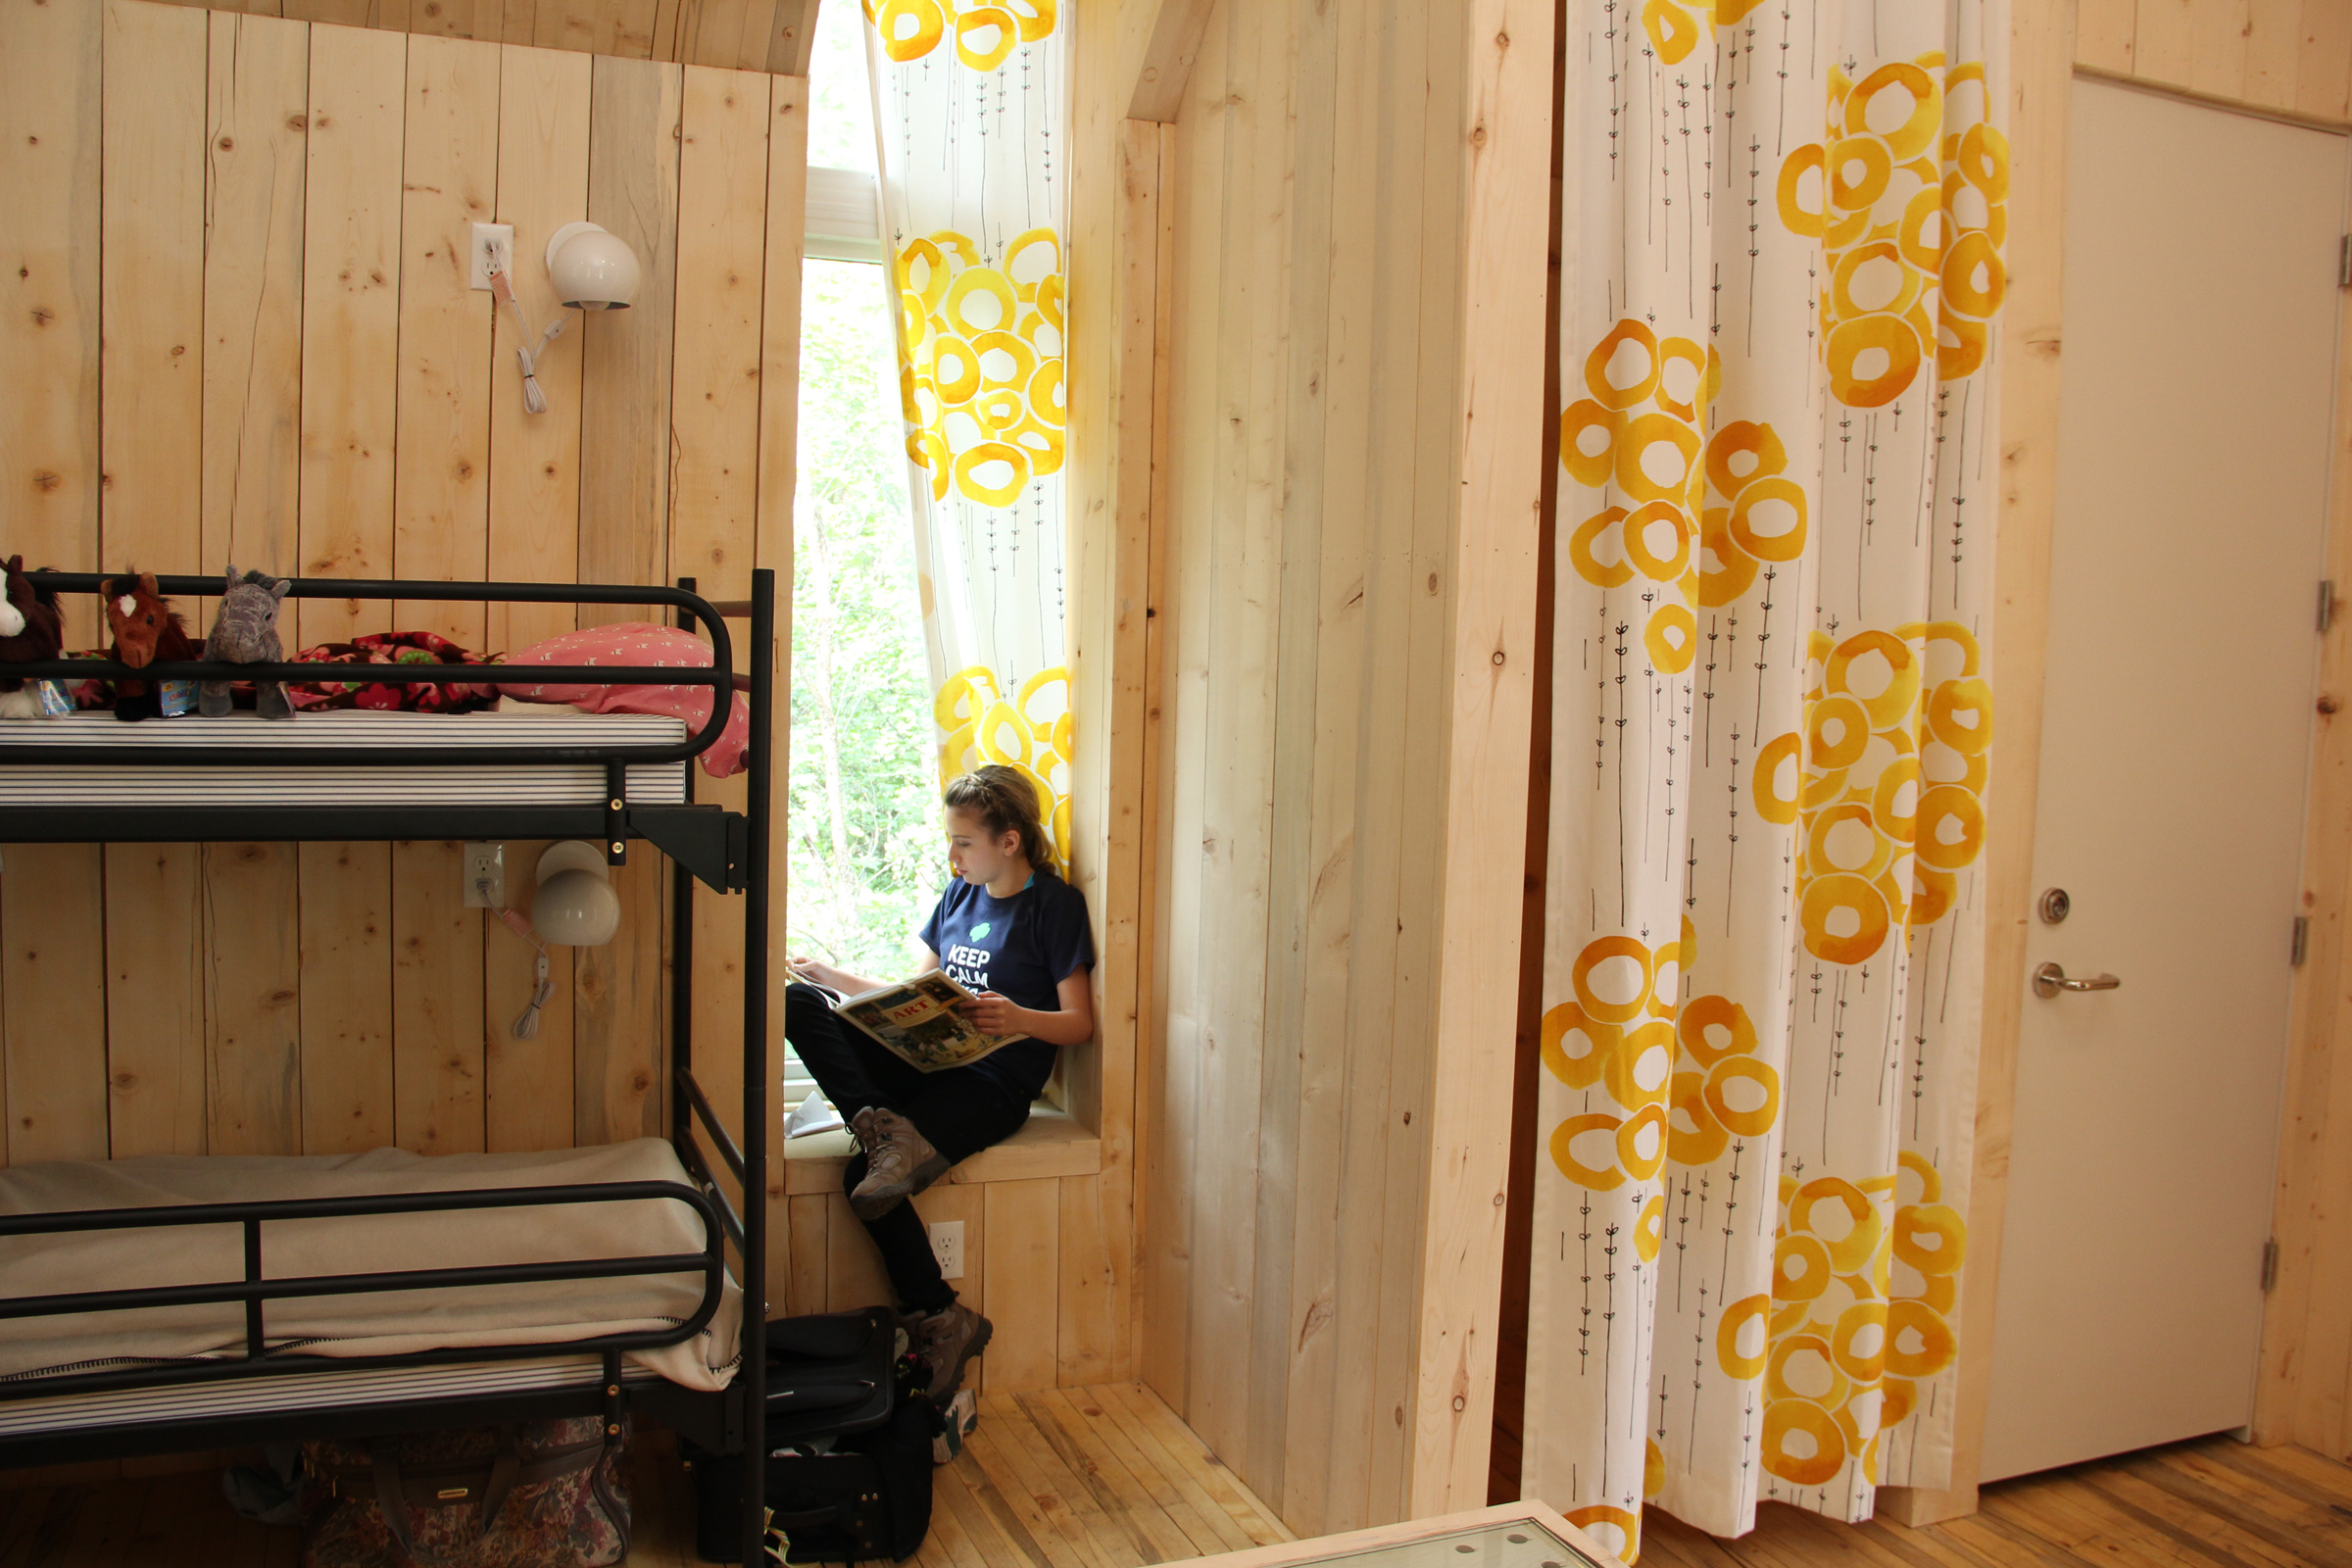 Cabins Built with Girl Power and Sustainable Timber -Trefoil Ranch Girl Scout Camp, Provo Canyon